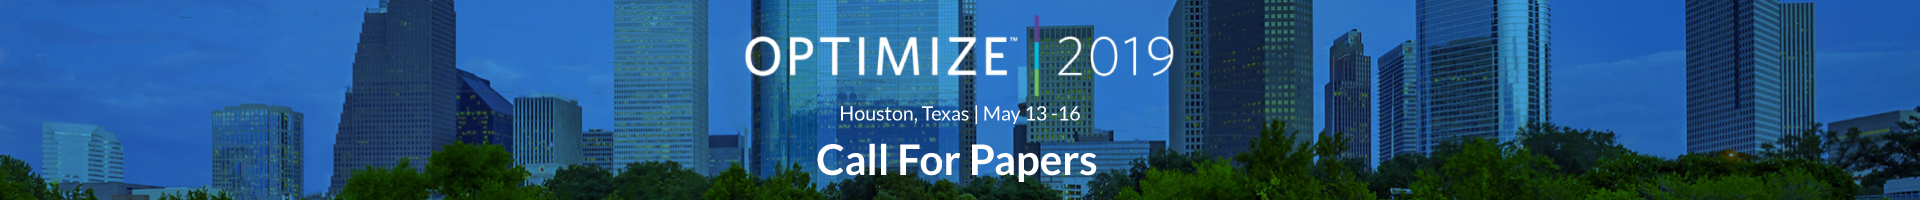 OPTIMIZE 2019 - Call for Papers